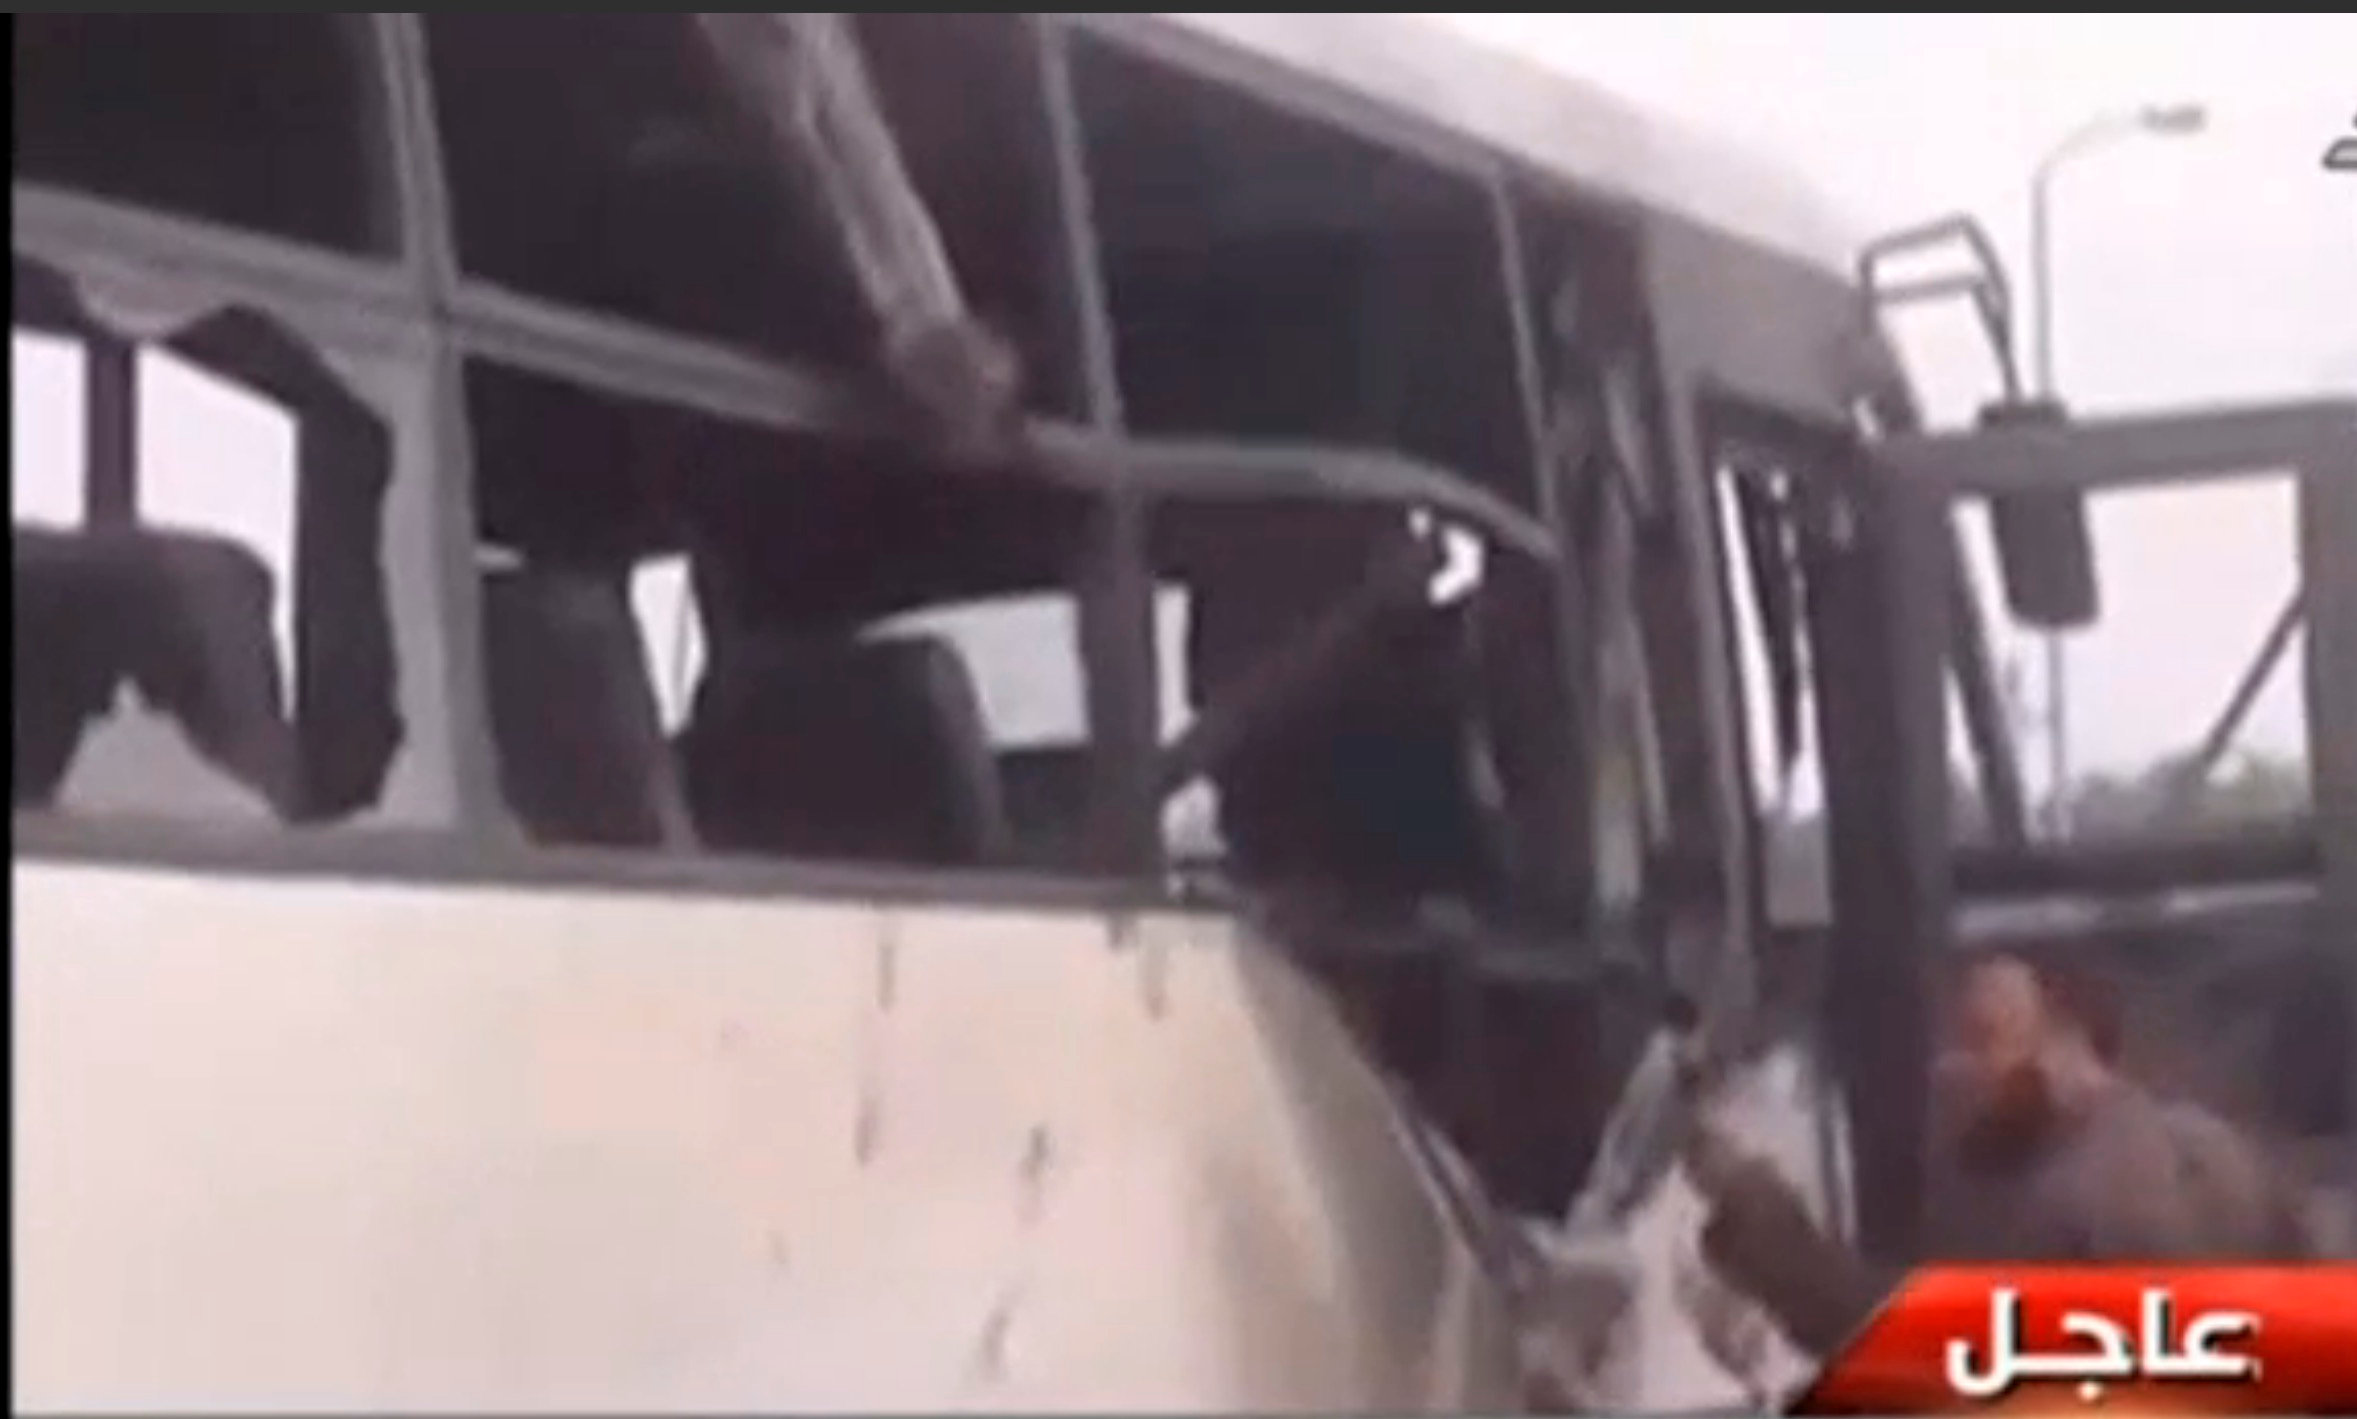 Aftermath of attack on buses and truck carrying Coptic Christians in Minya Province, Egypt on May 26, 2017. (EGYPT TV via REUTERS)